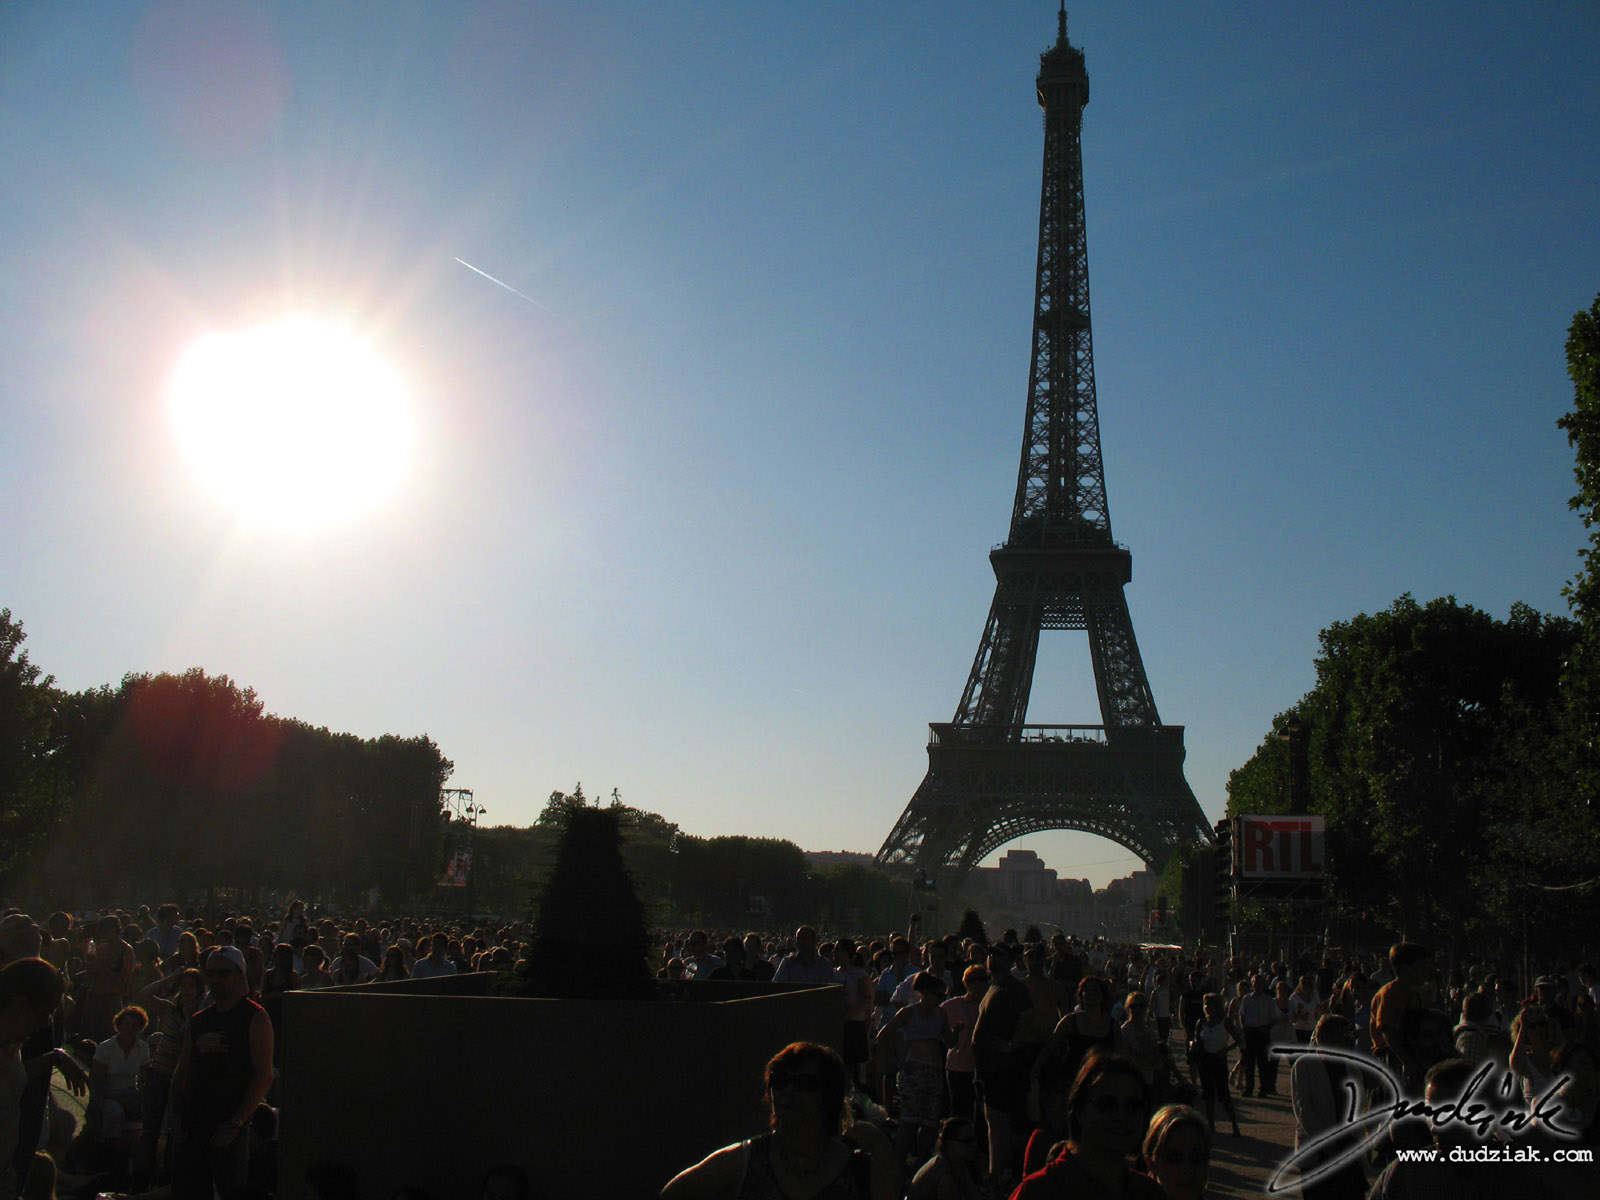 France,  Paris,  Bastille Day,  Quatorze Juillet,  Eiffel Tower,  Champ de Mars